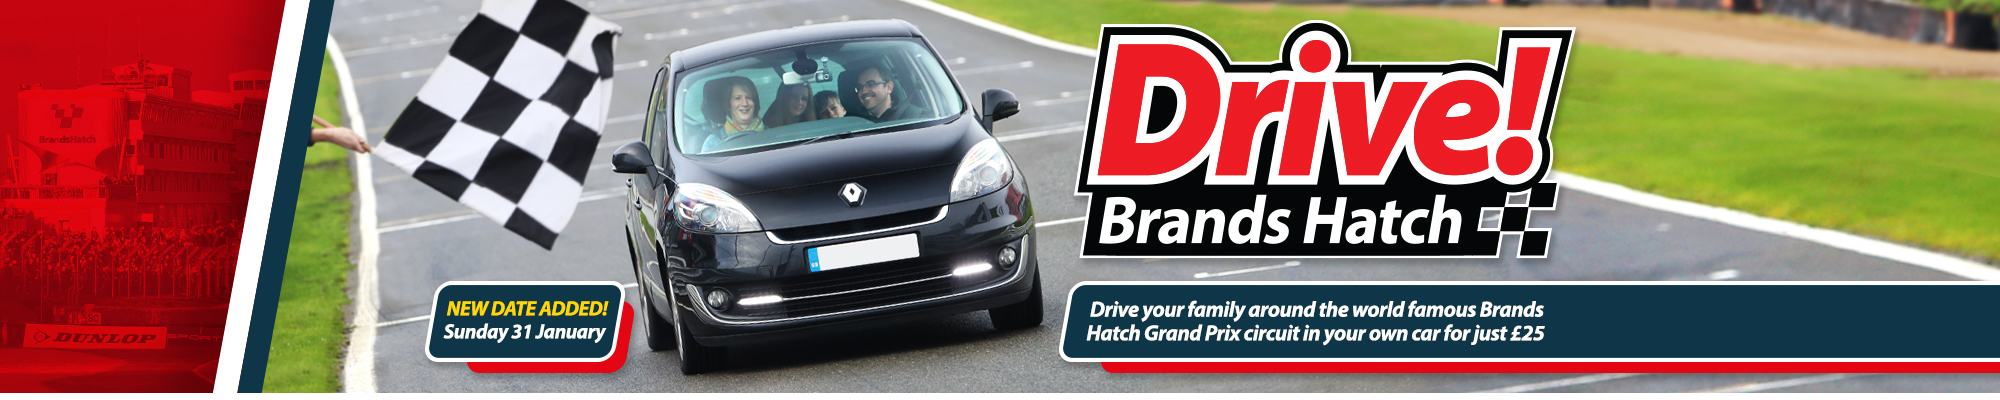 Welcome to Drive! Brands Hatch